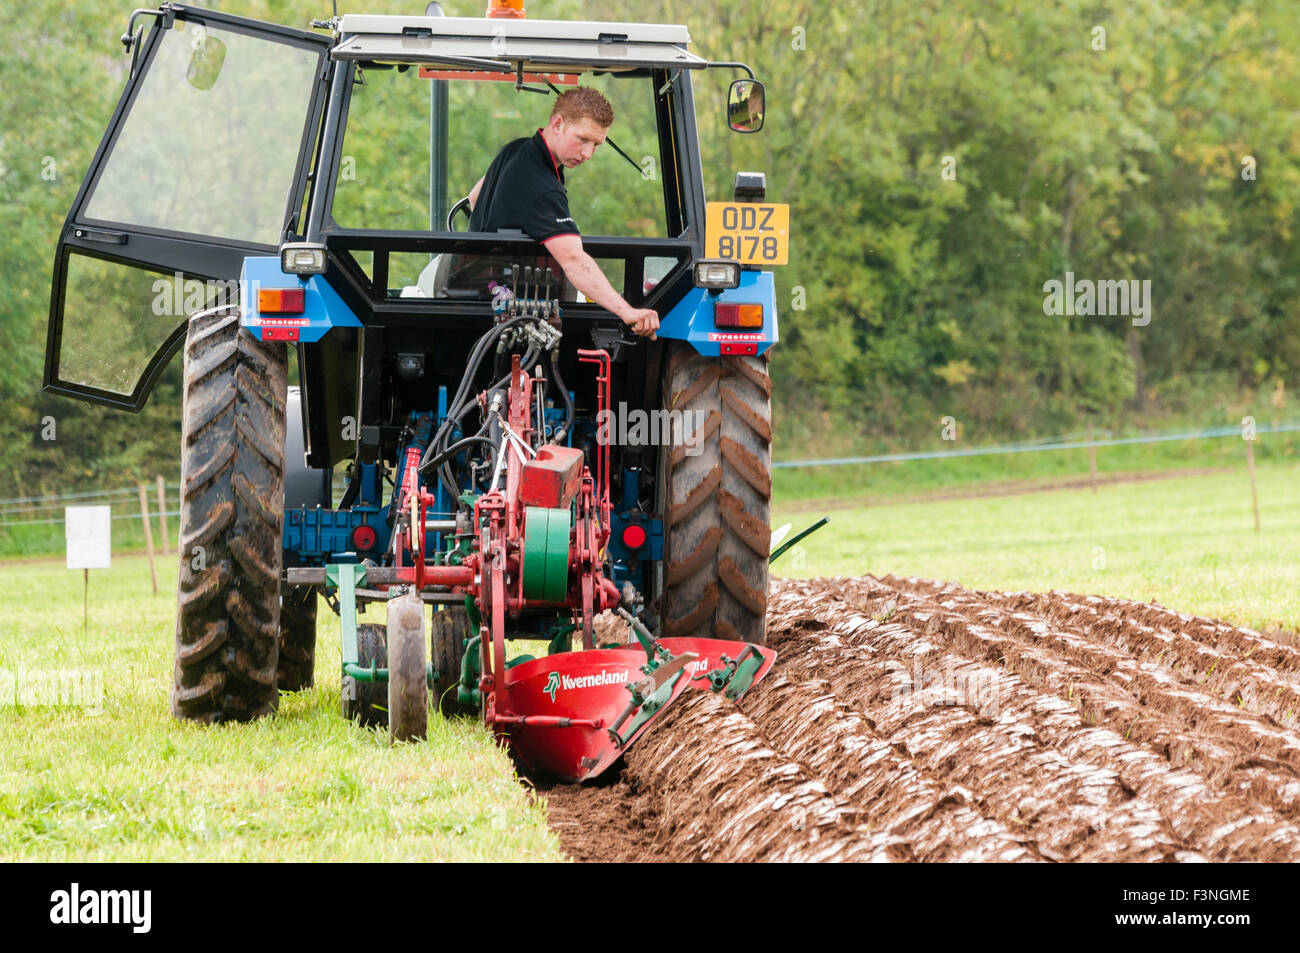 Lisburn, Northern Ireland. 10 Oct 2015 - A competitor uses a tractor to plough a field at the Northern Ireland Ploughing - Stock Image